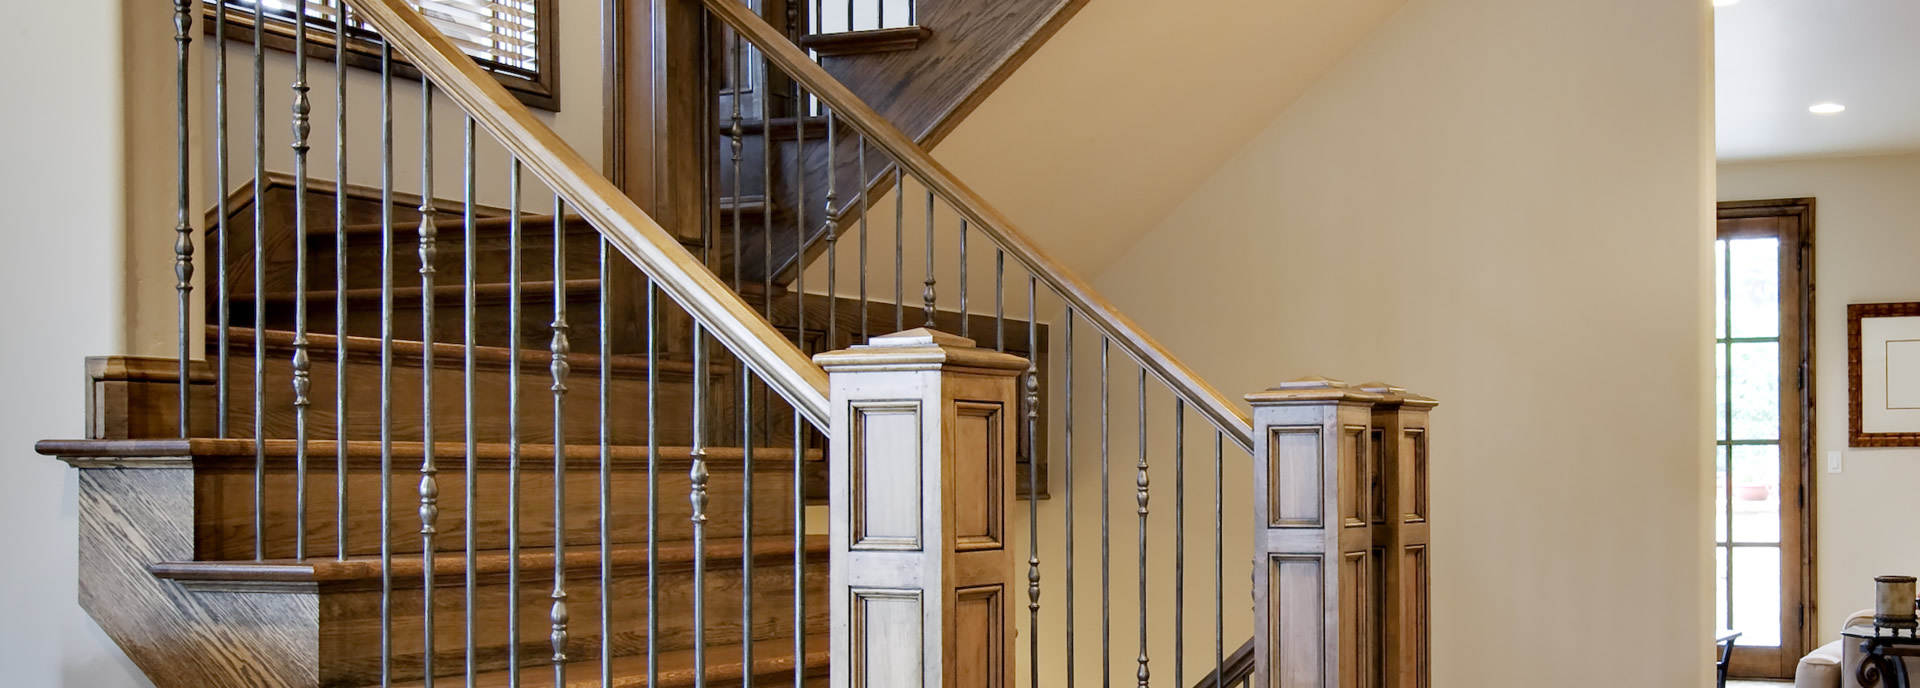 Stunning Round Stairs: Match Your Aesthetic with Wood or Metal Alpharetta, GA